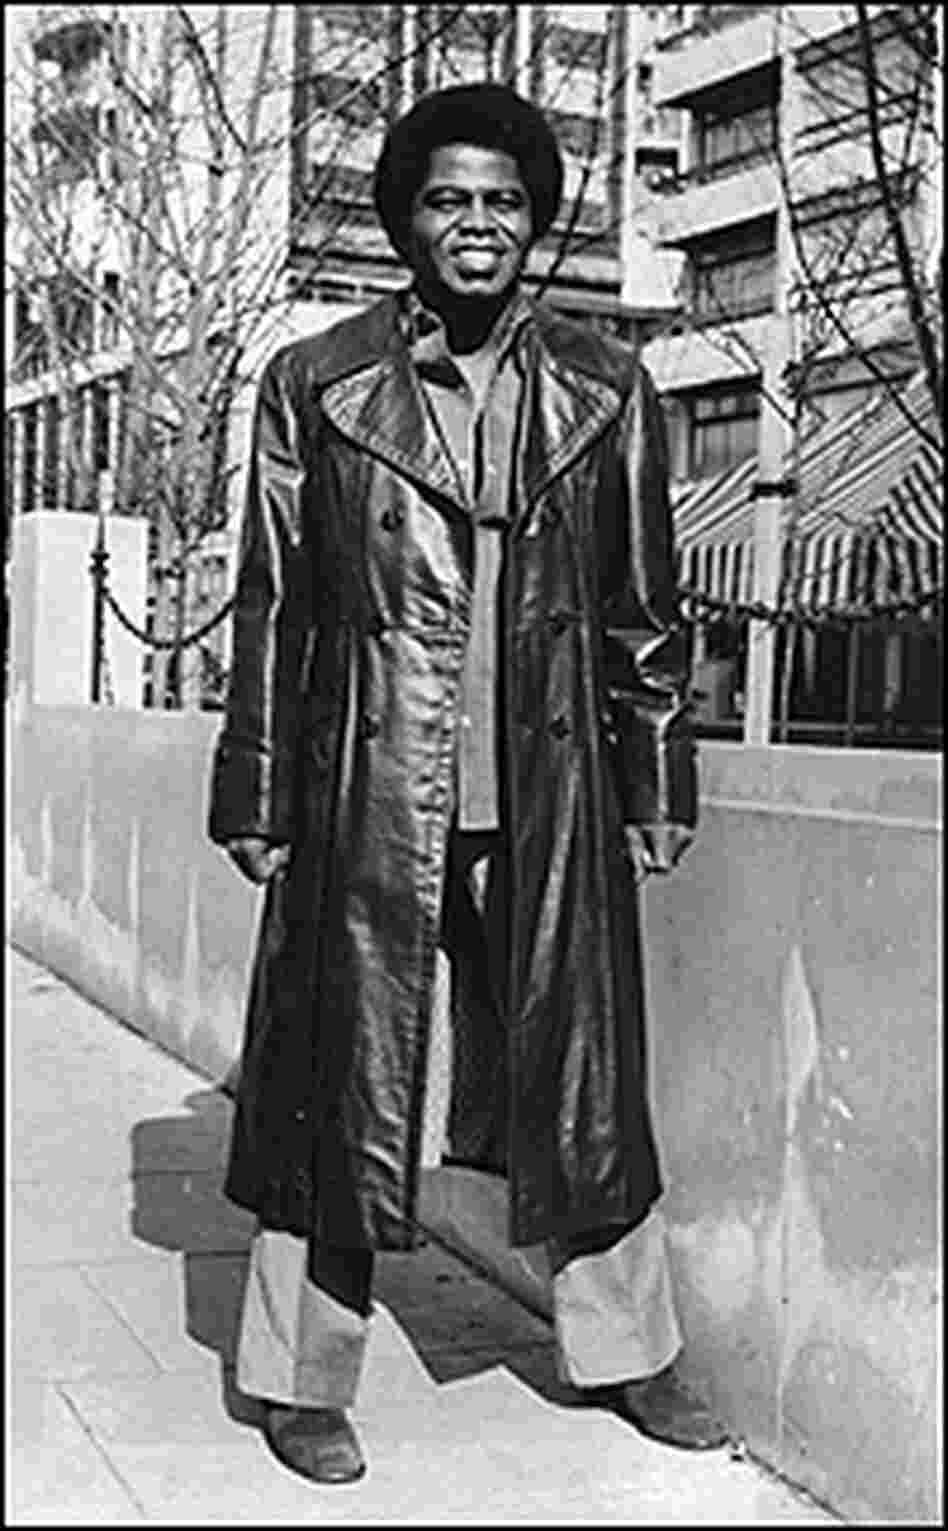 Brown stands on a street wearing a long leather coat.